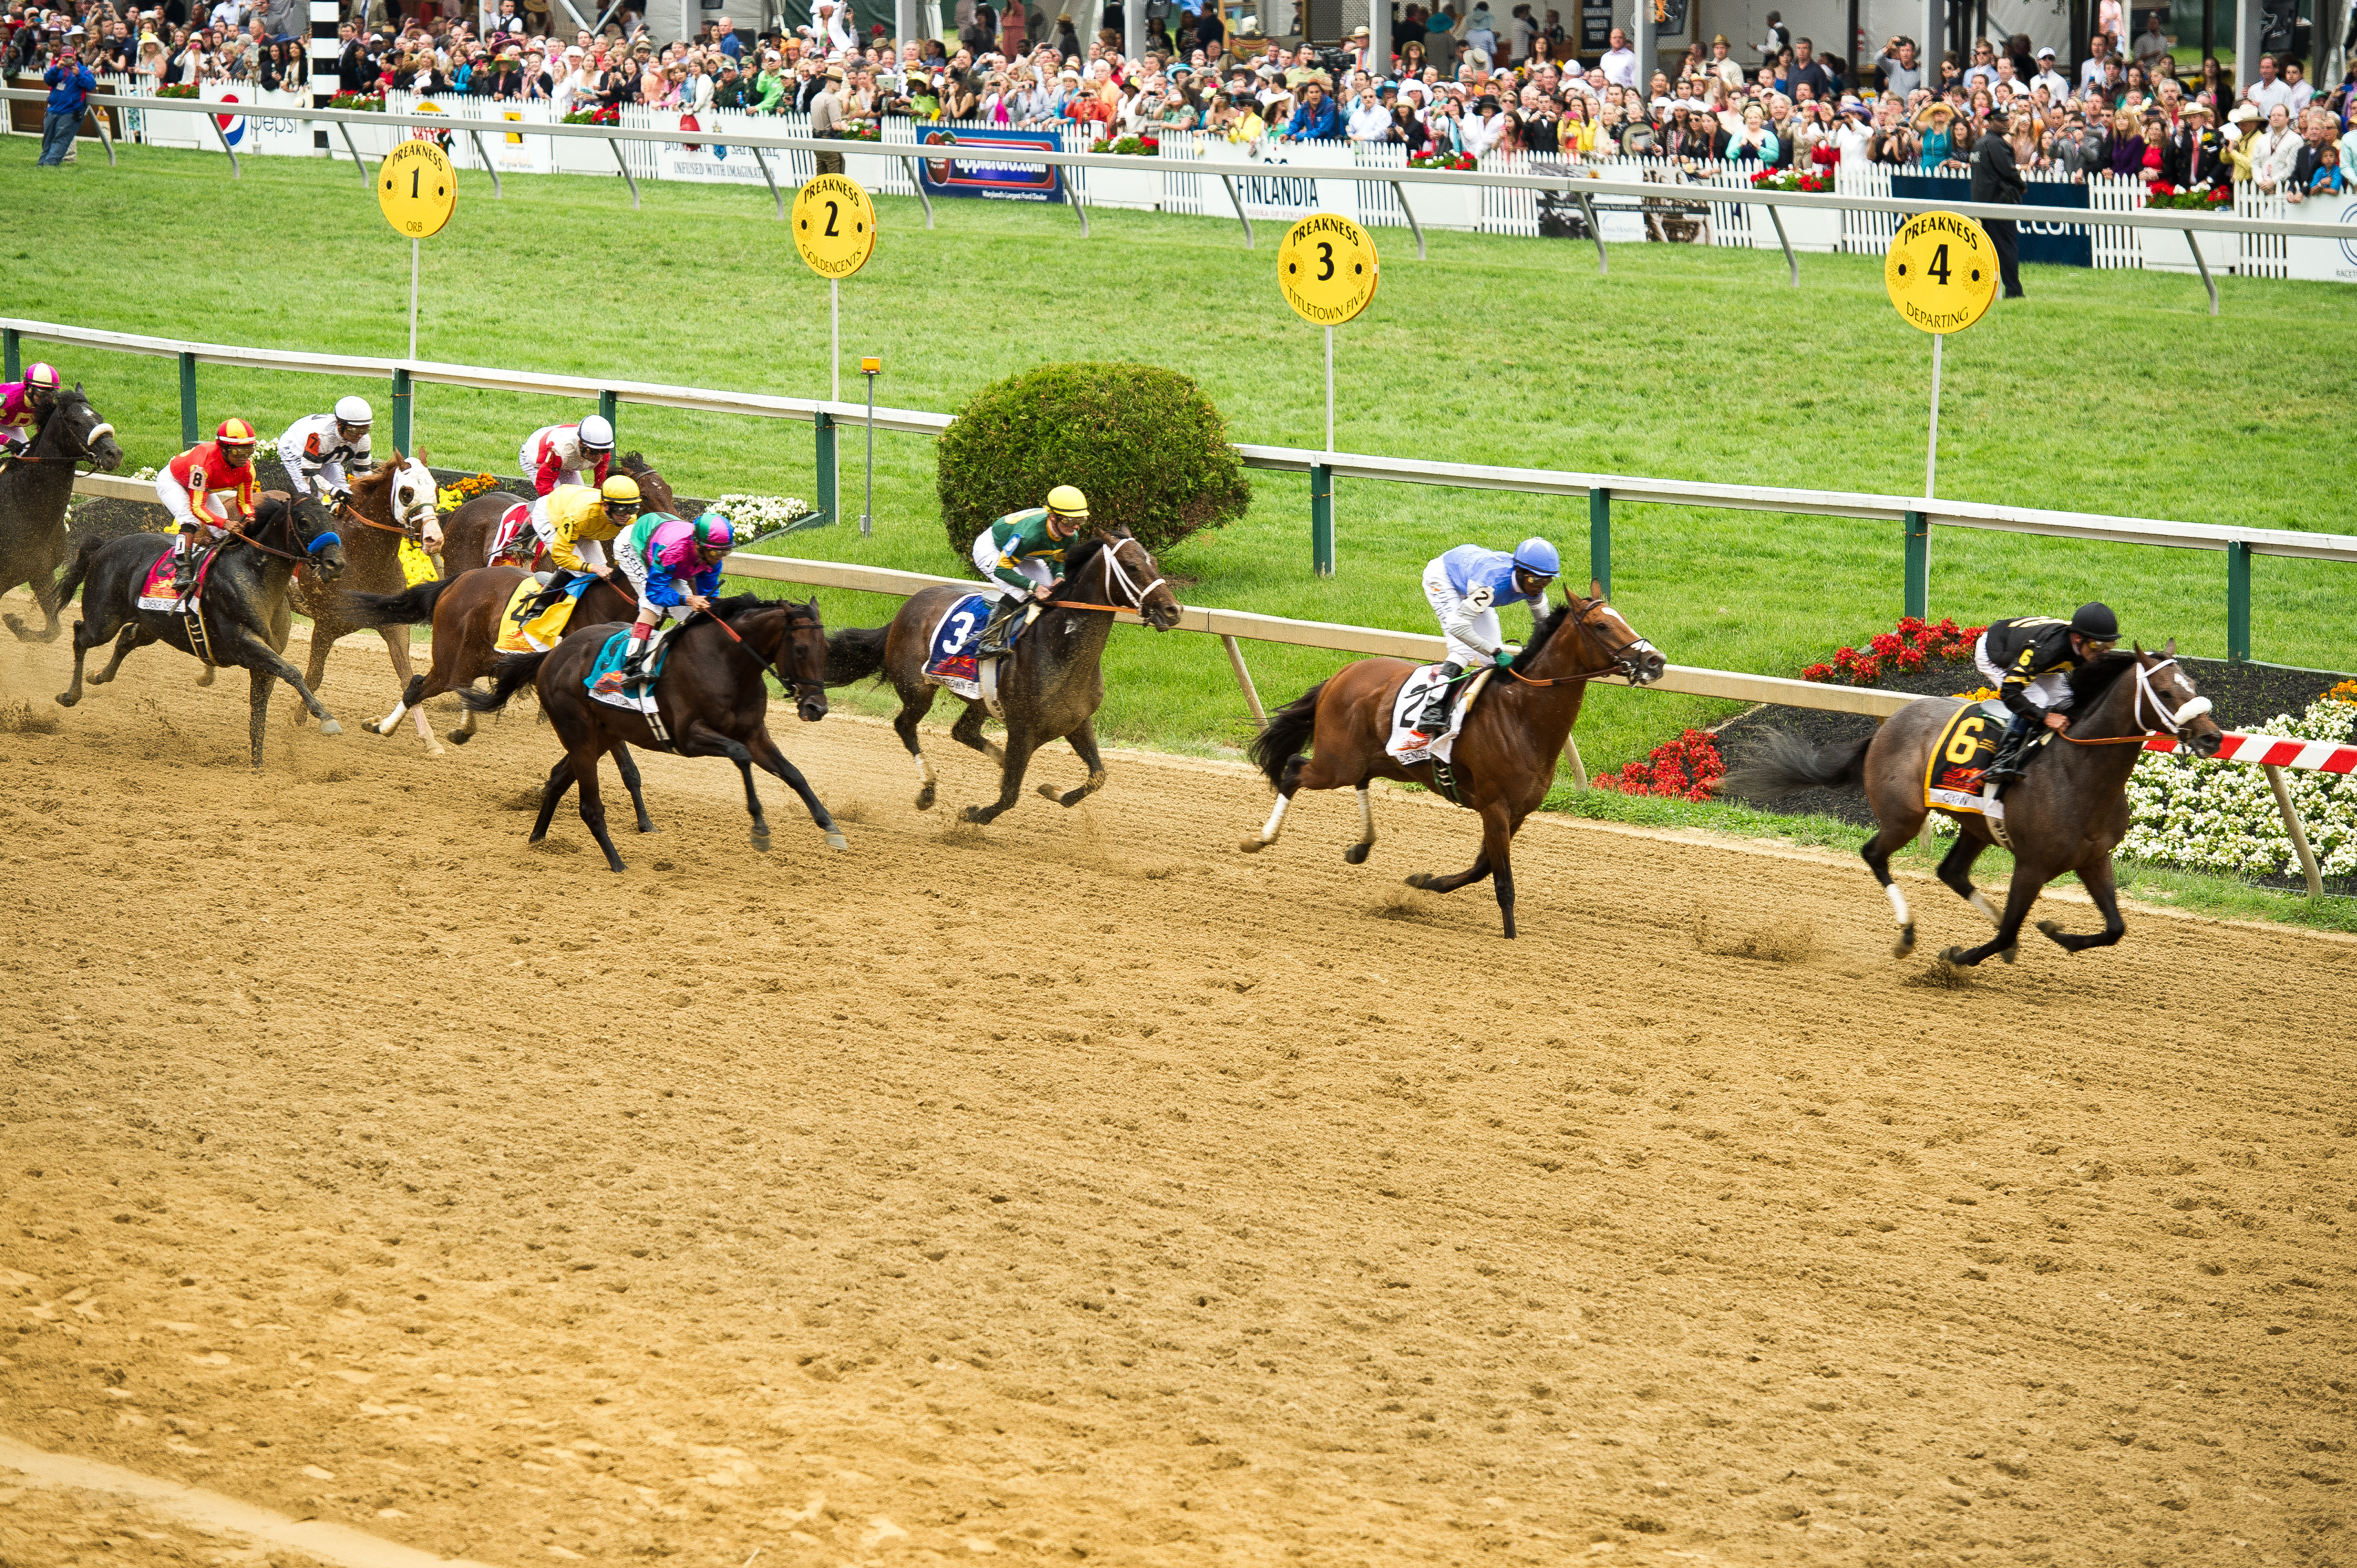 File:Finish of the 2013 Preakness Stakes.jpg - Wikimedia ...